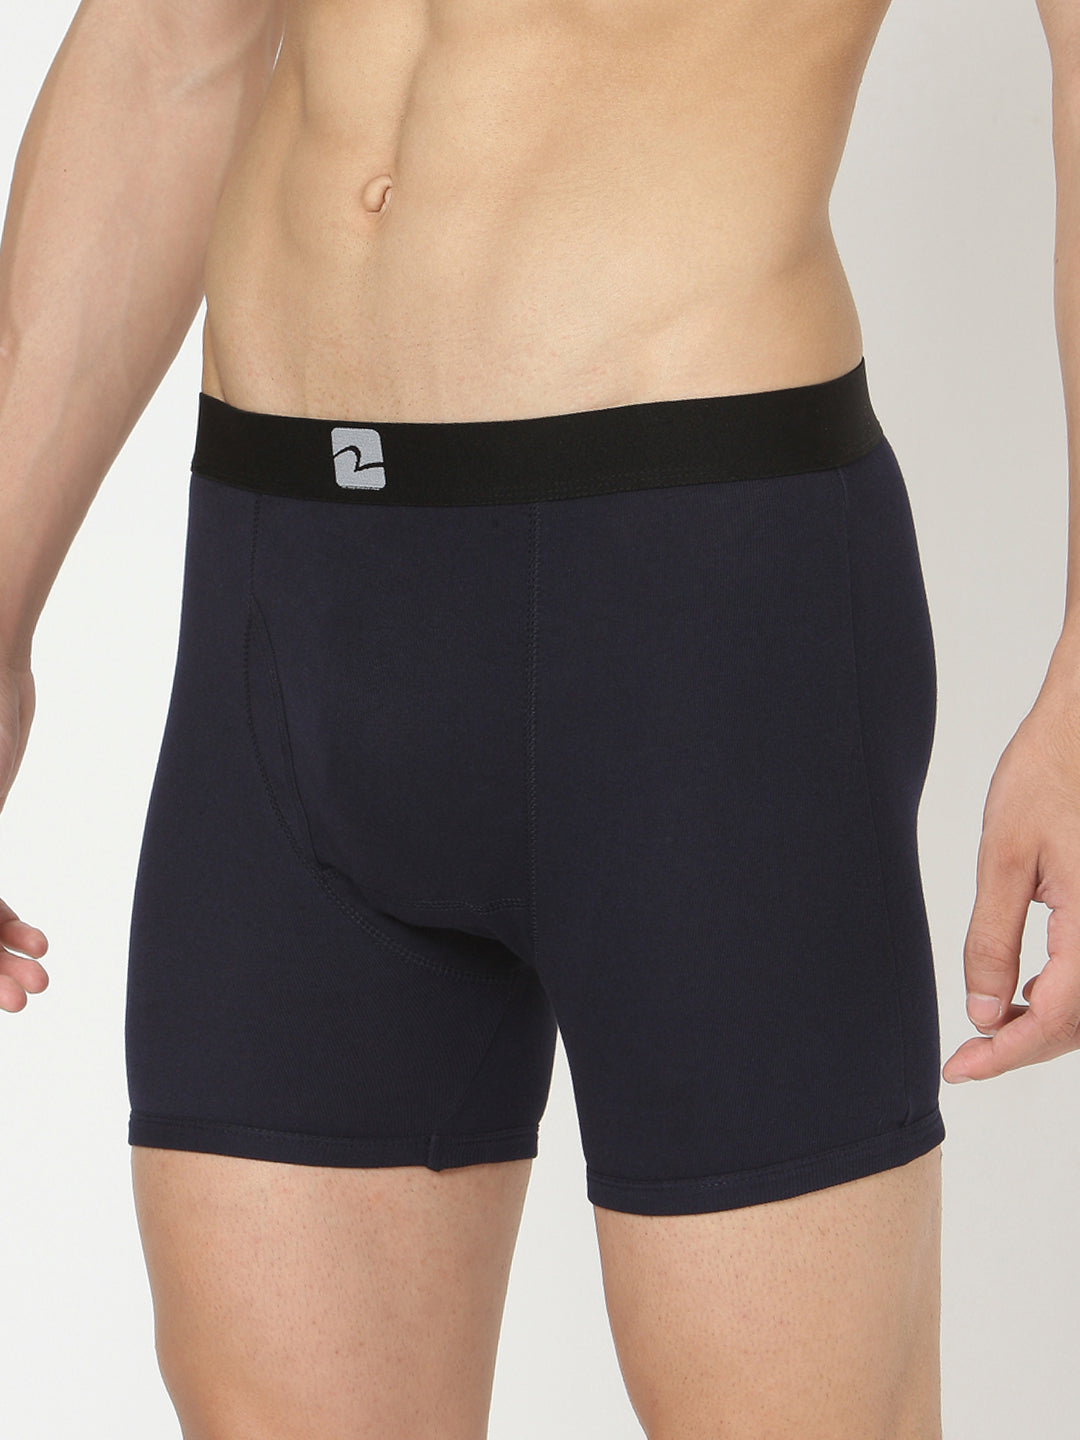 Underjeans Navy Cotton Trunks Pack of 2